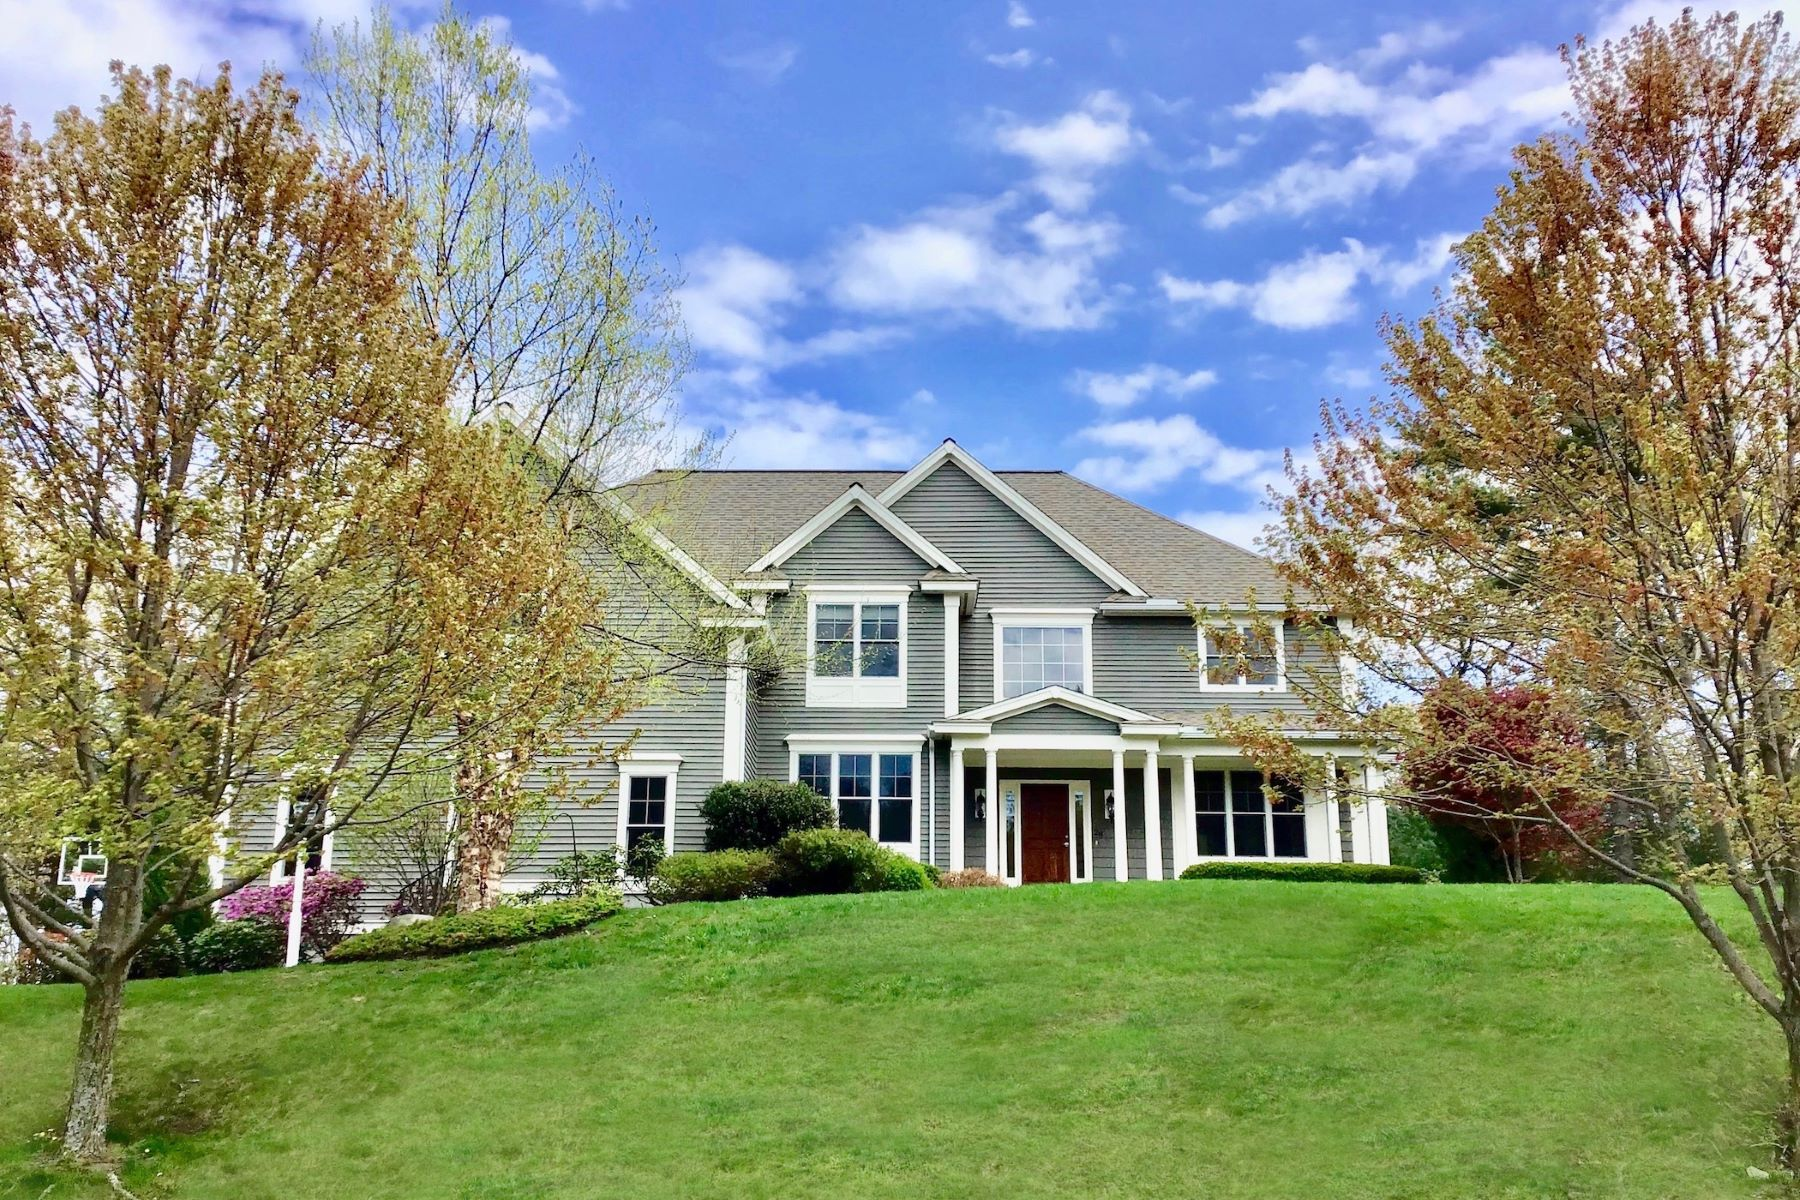 Single Family Home for Active at 28 Overlook Drive, Bedford 28 Overlook Dr Bedford, Massachusetts 01730 United States